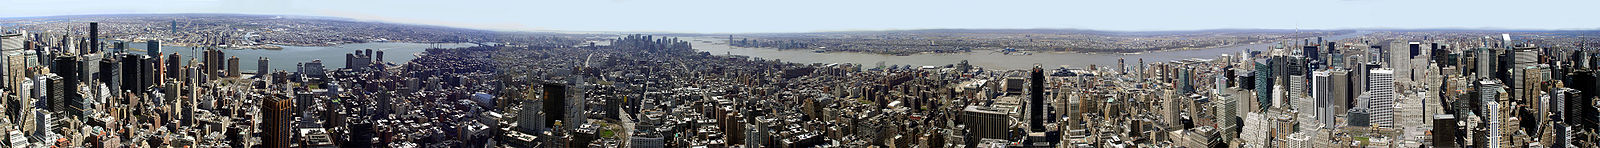 Vue panoramique de Manhattan prise à partir de l'Empire State Building